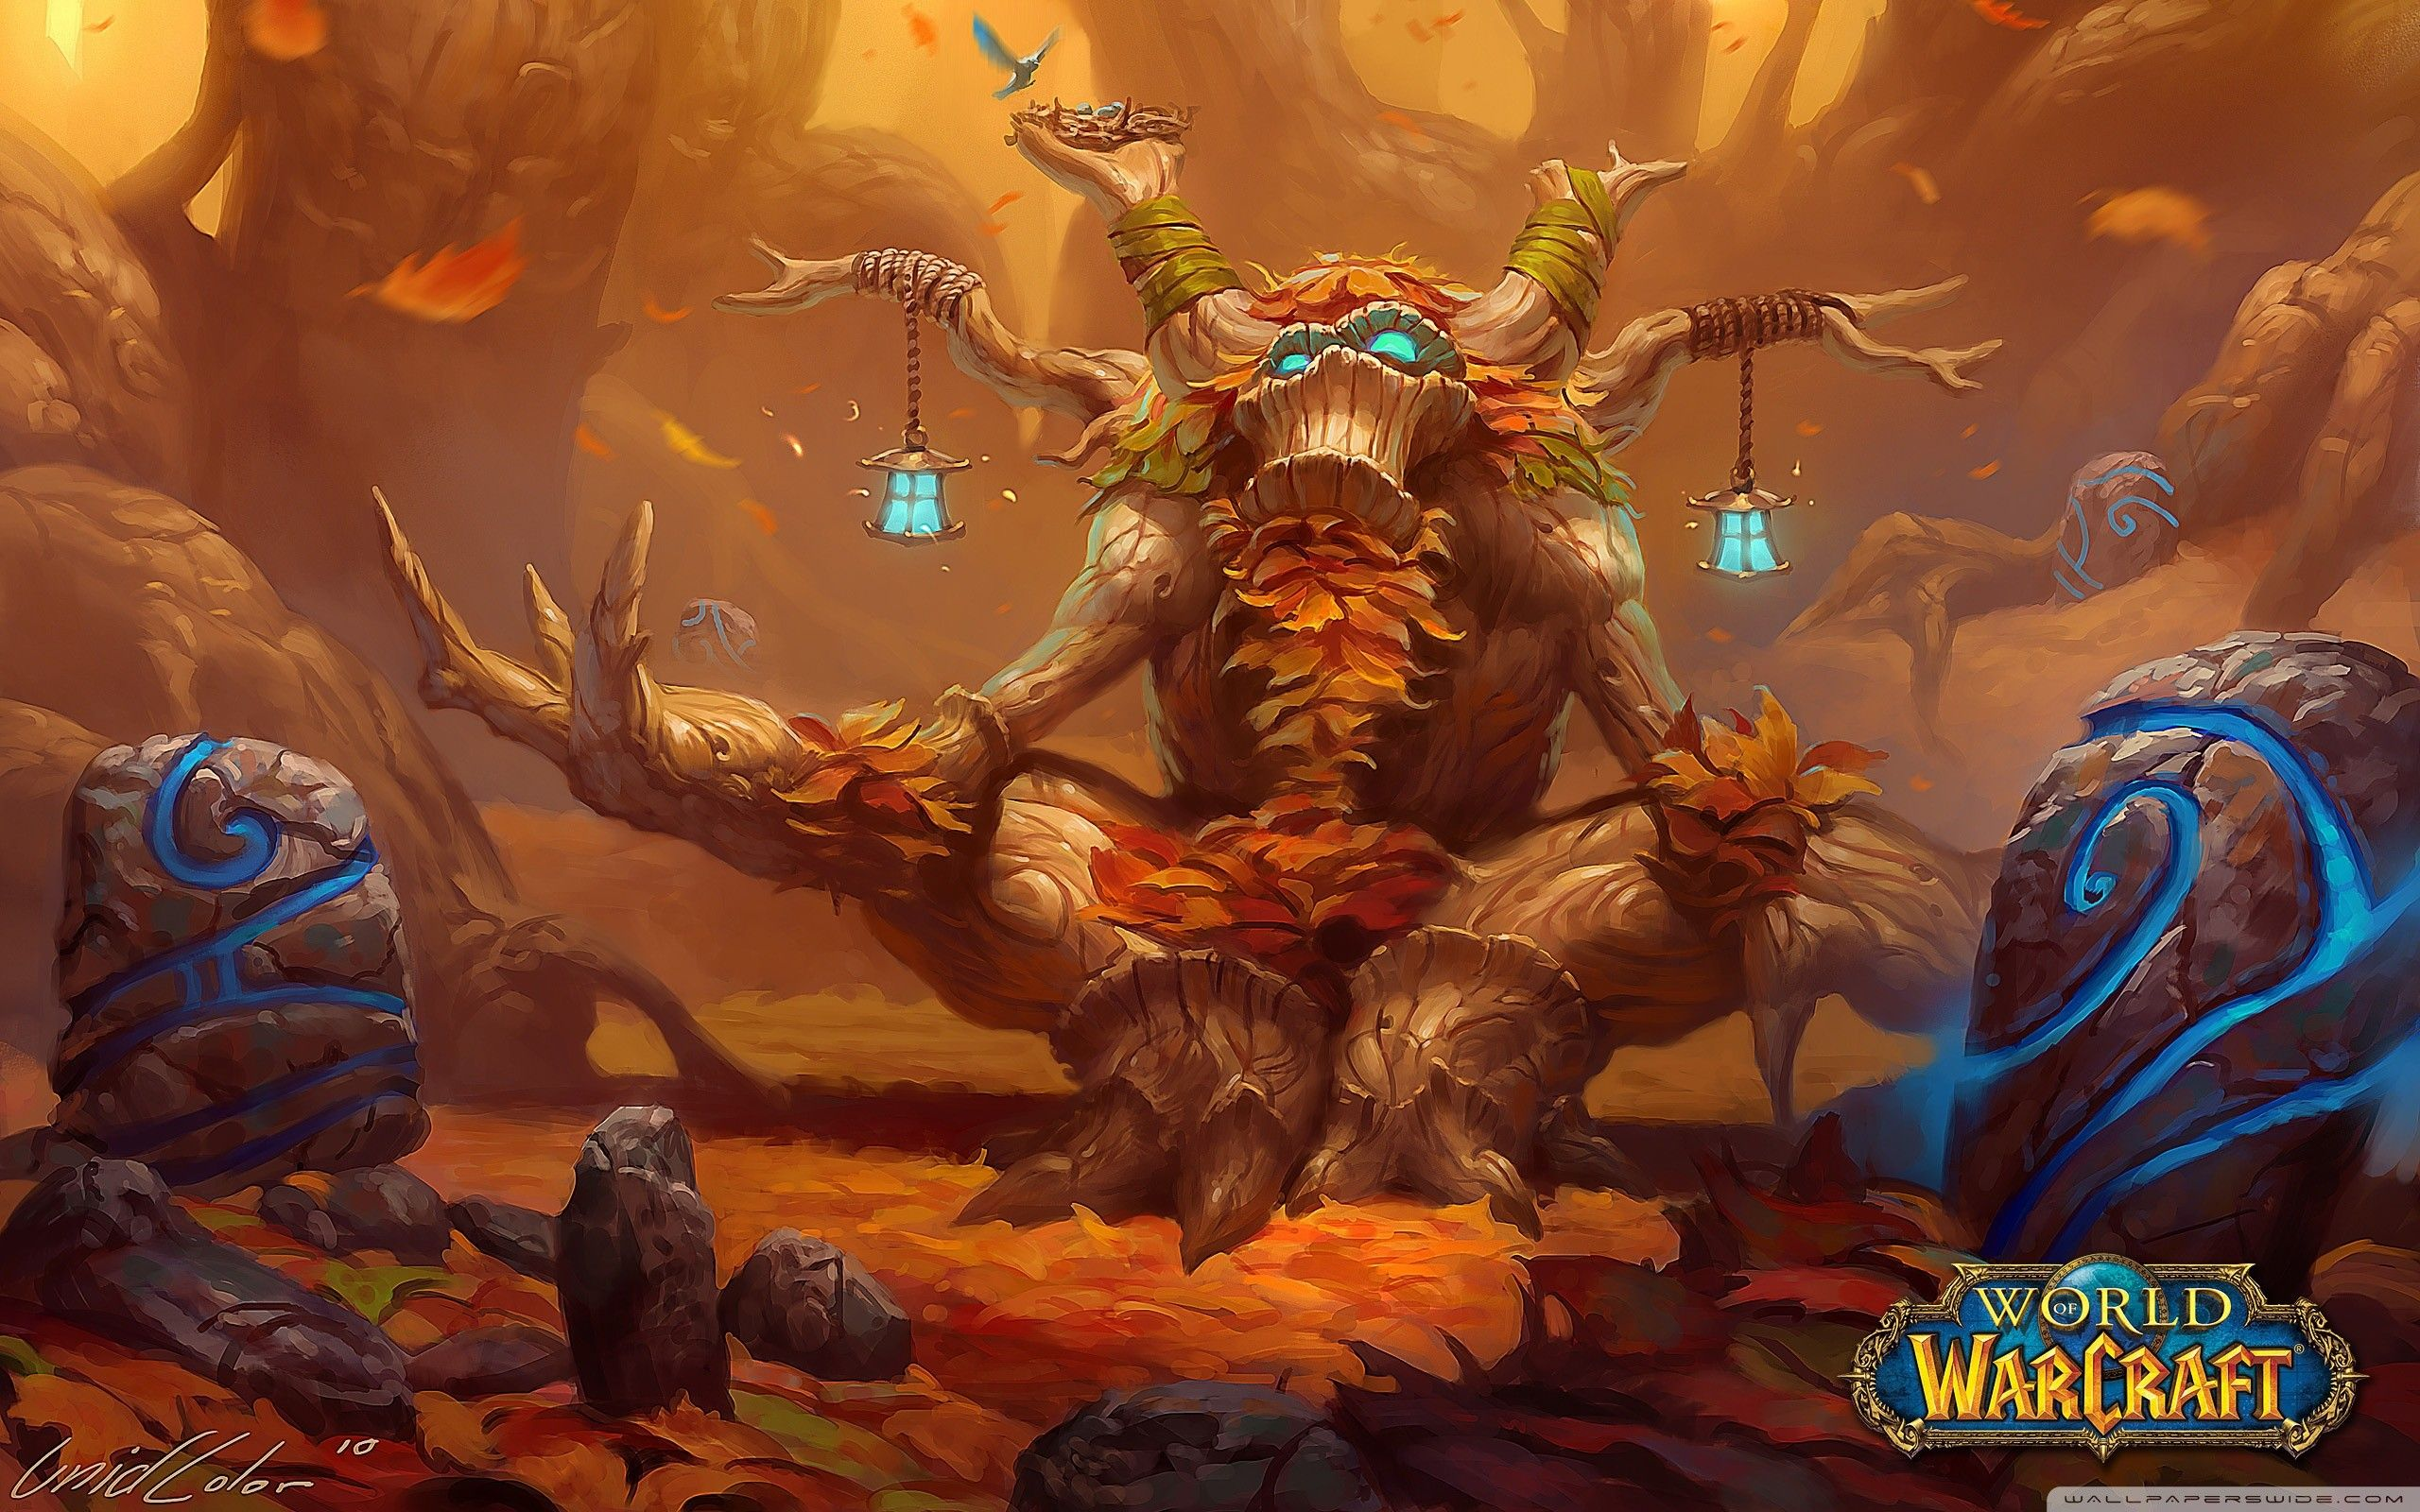 Res 2560x1600 Wide World Of Warcraft Druid World Of Warcraft Wallpaper Warcraft Art